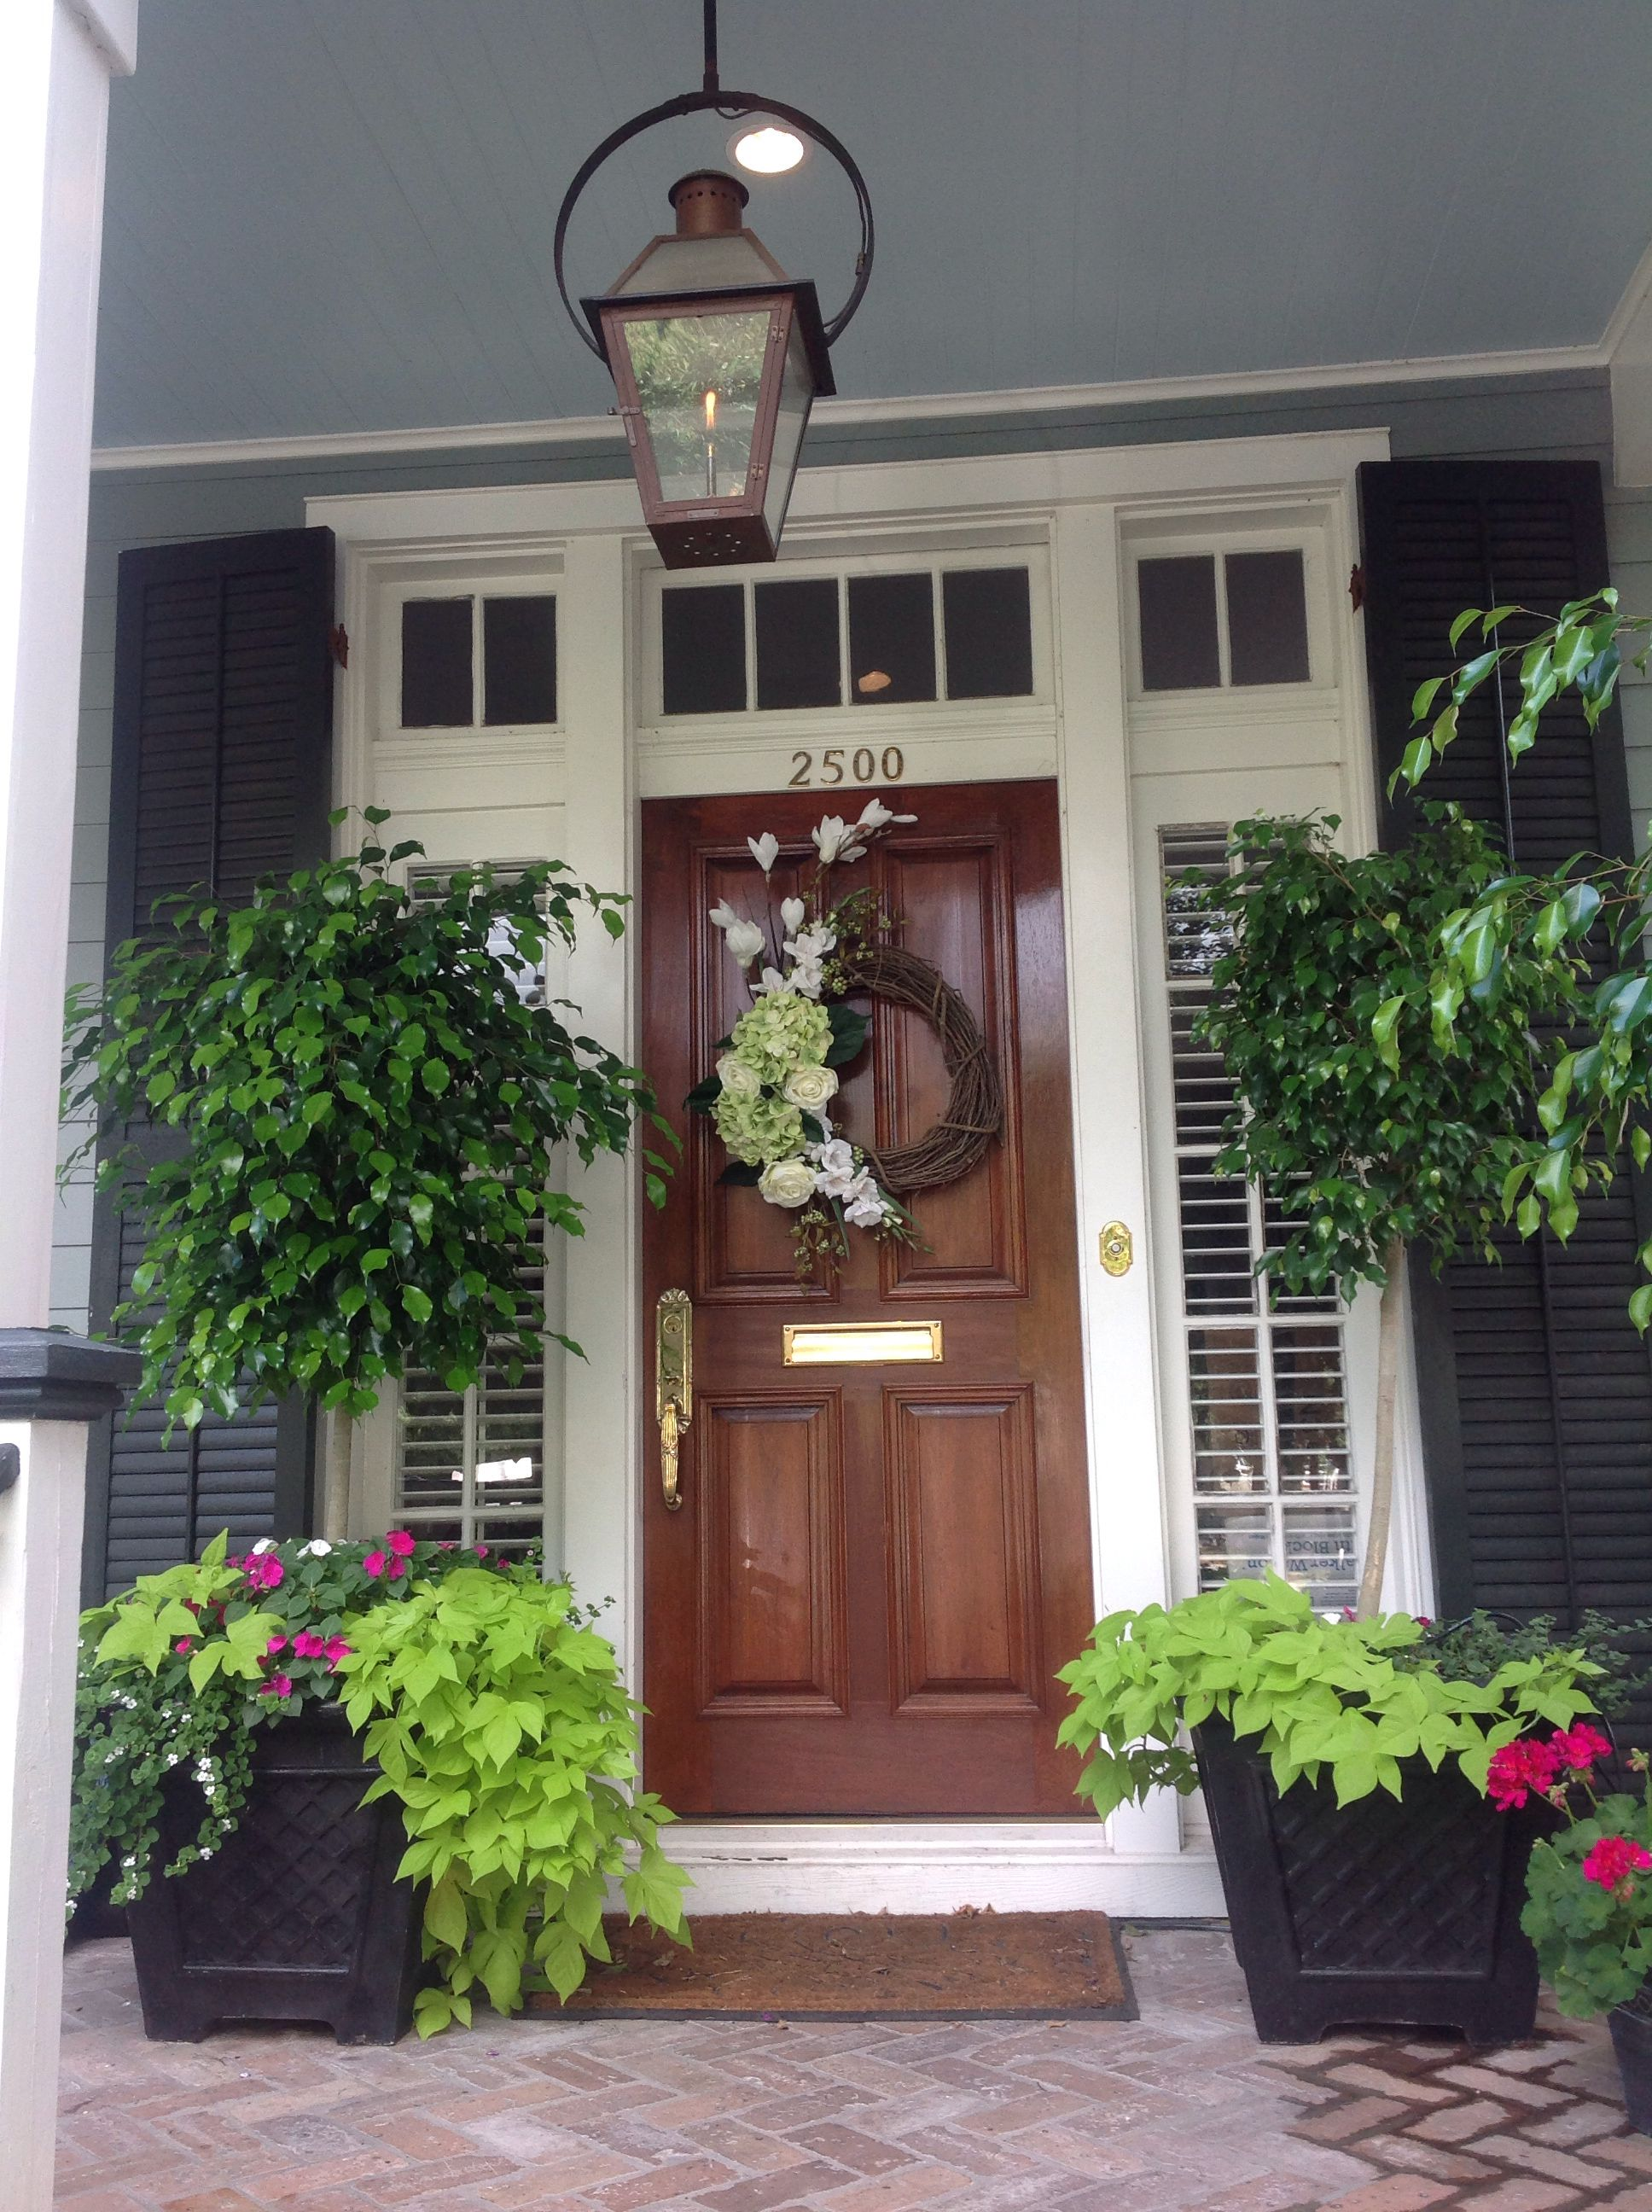 A pretty southern front porch front porch ideas pinterest for Southern front porches